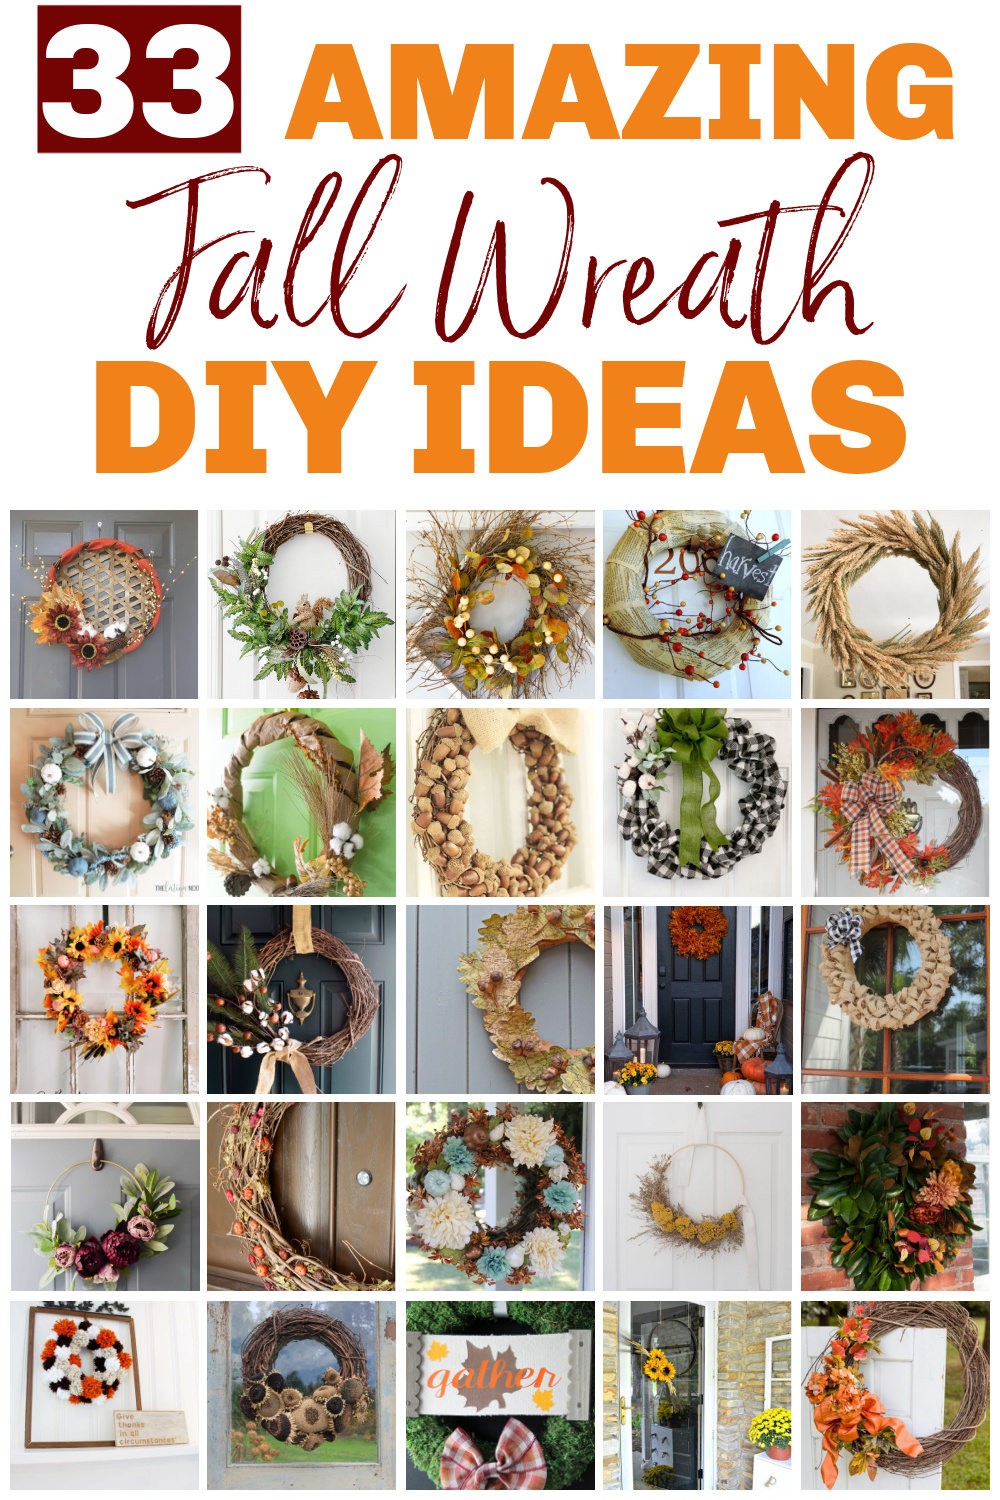 A collection of handmade fall wreaths